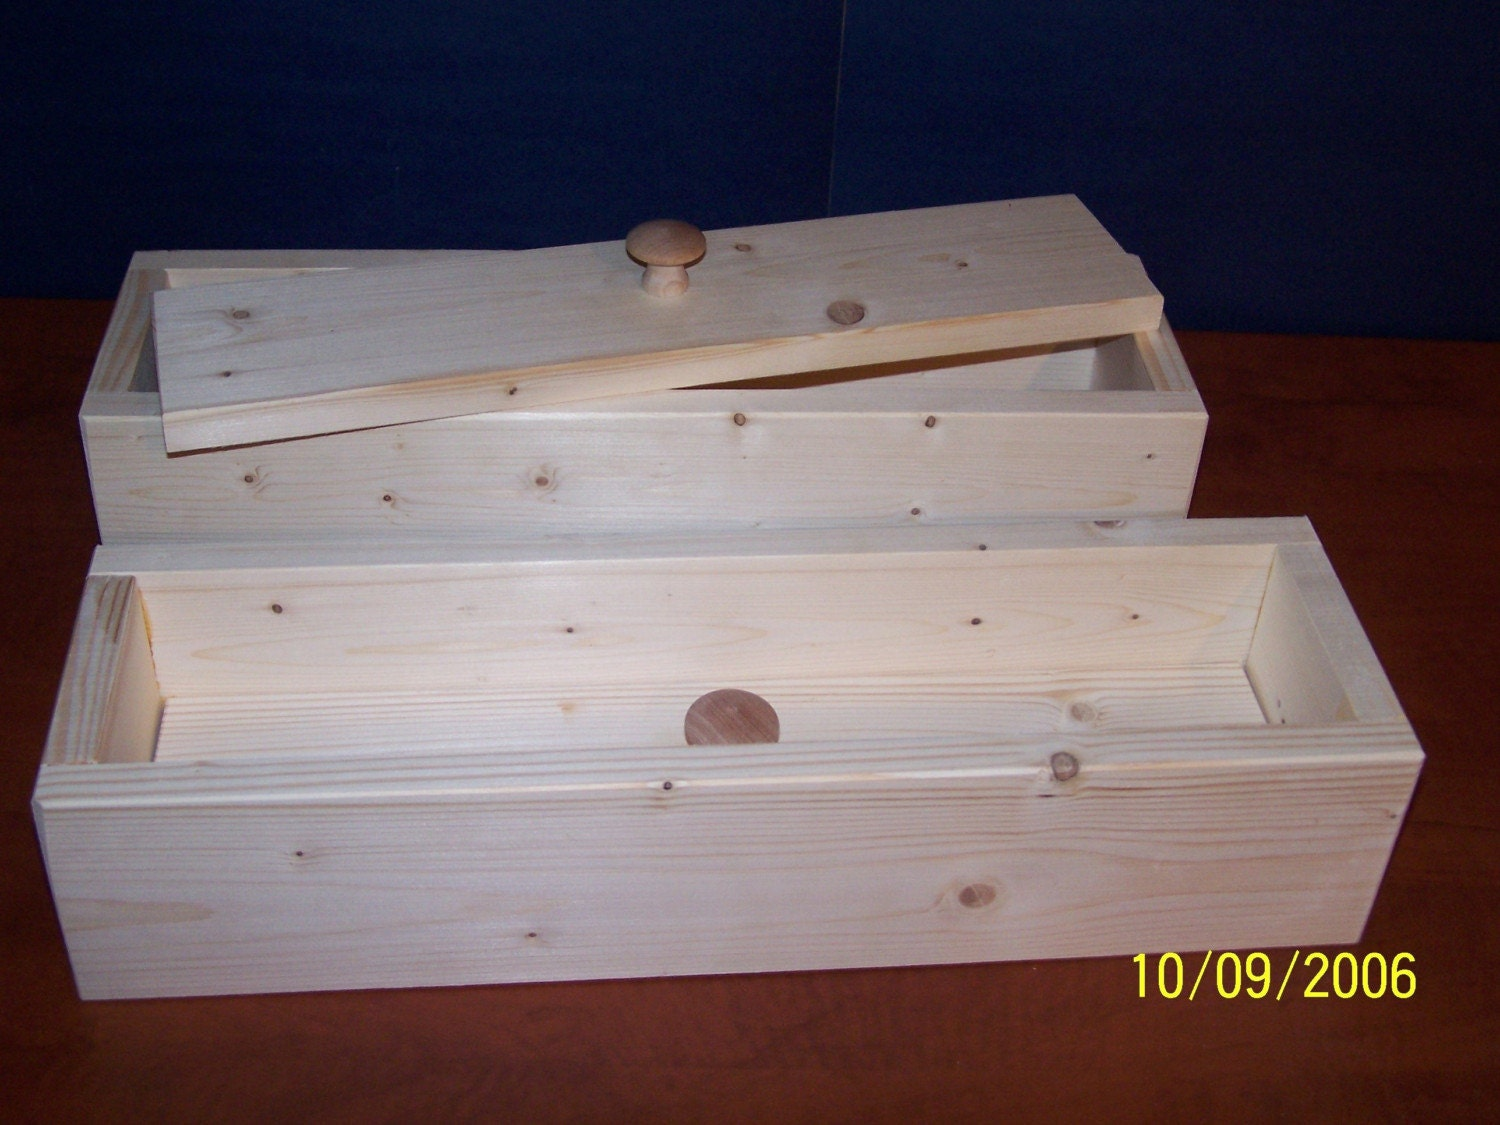 A Lot Or 2 Wood Wooden Soap Mold To Make 4-5lb Loaf